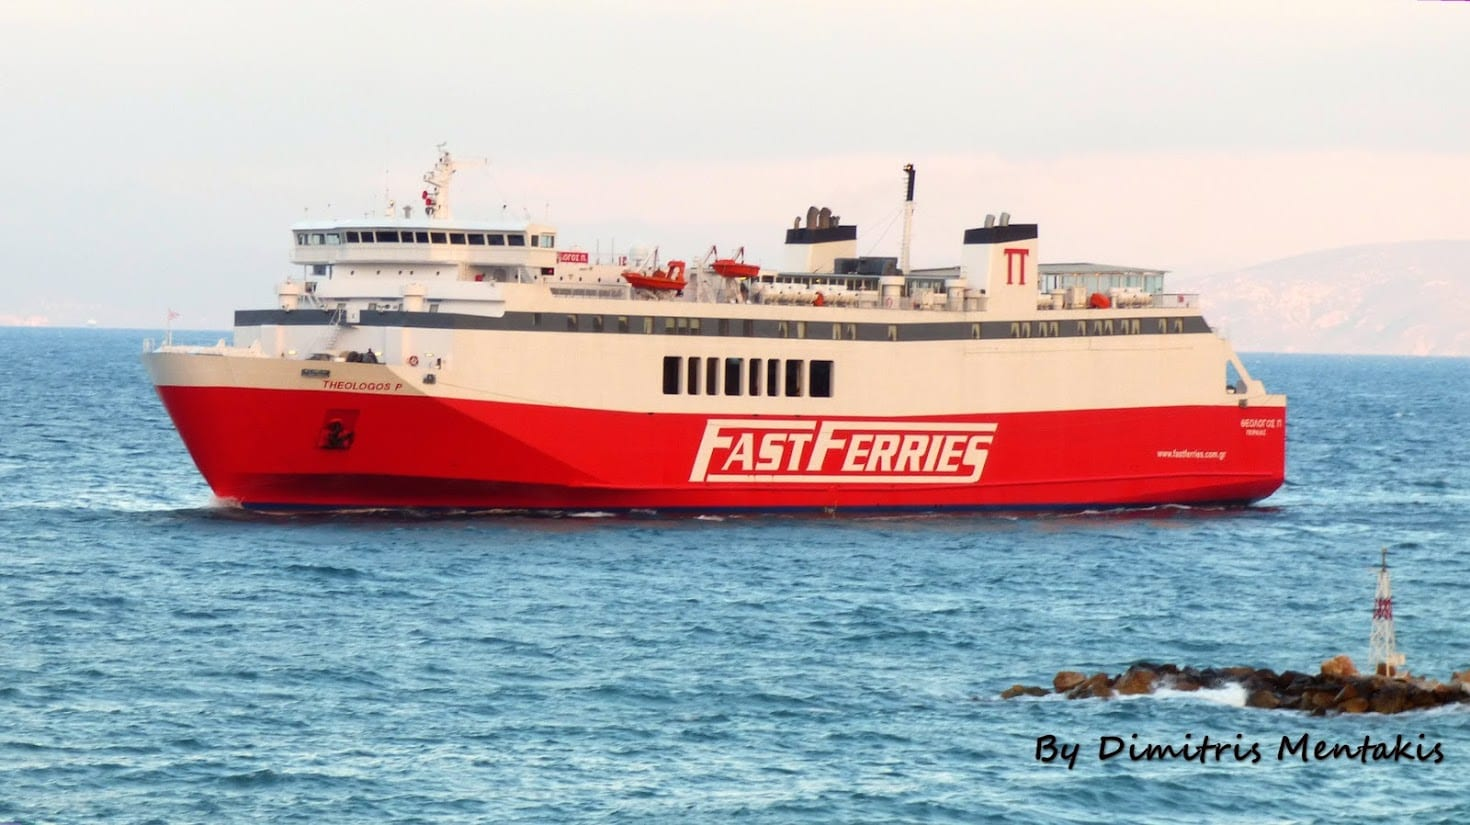 Fastferries Theologos